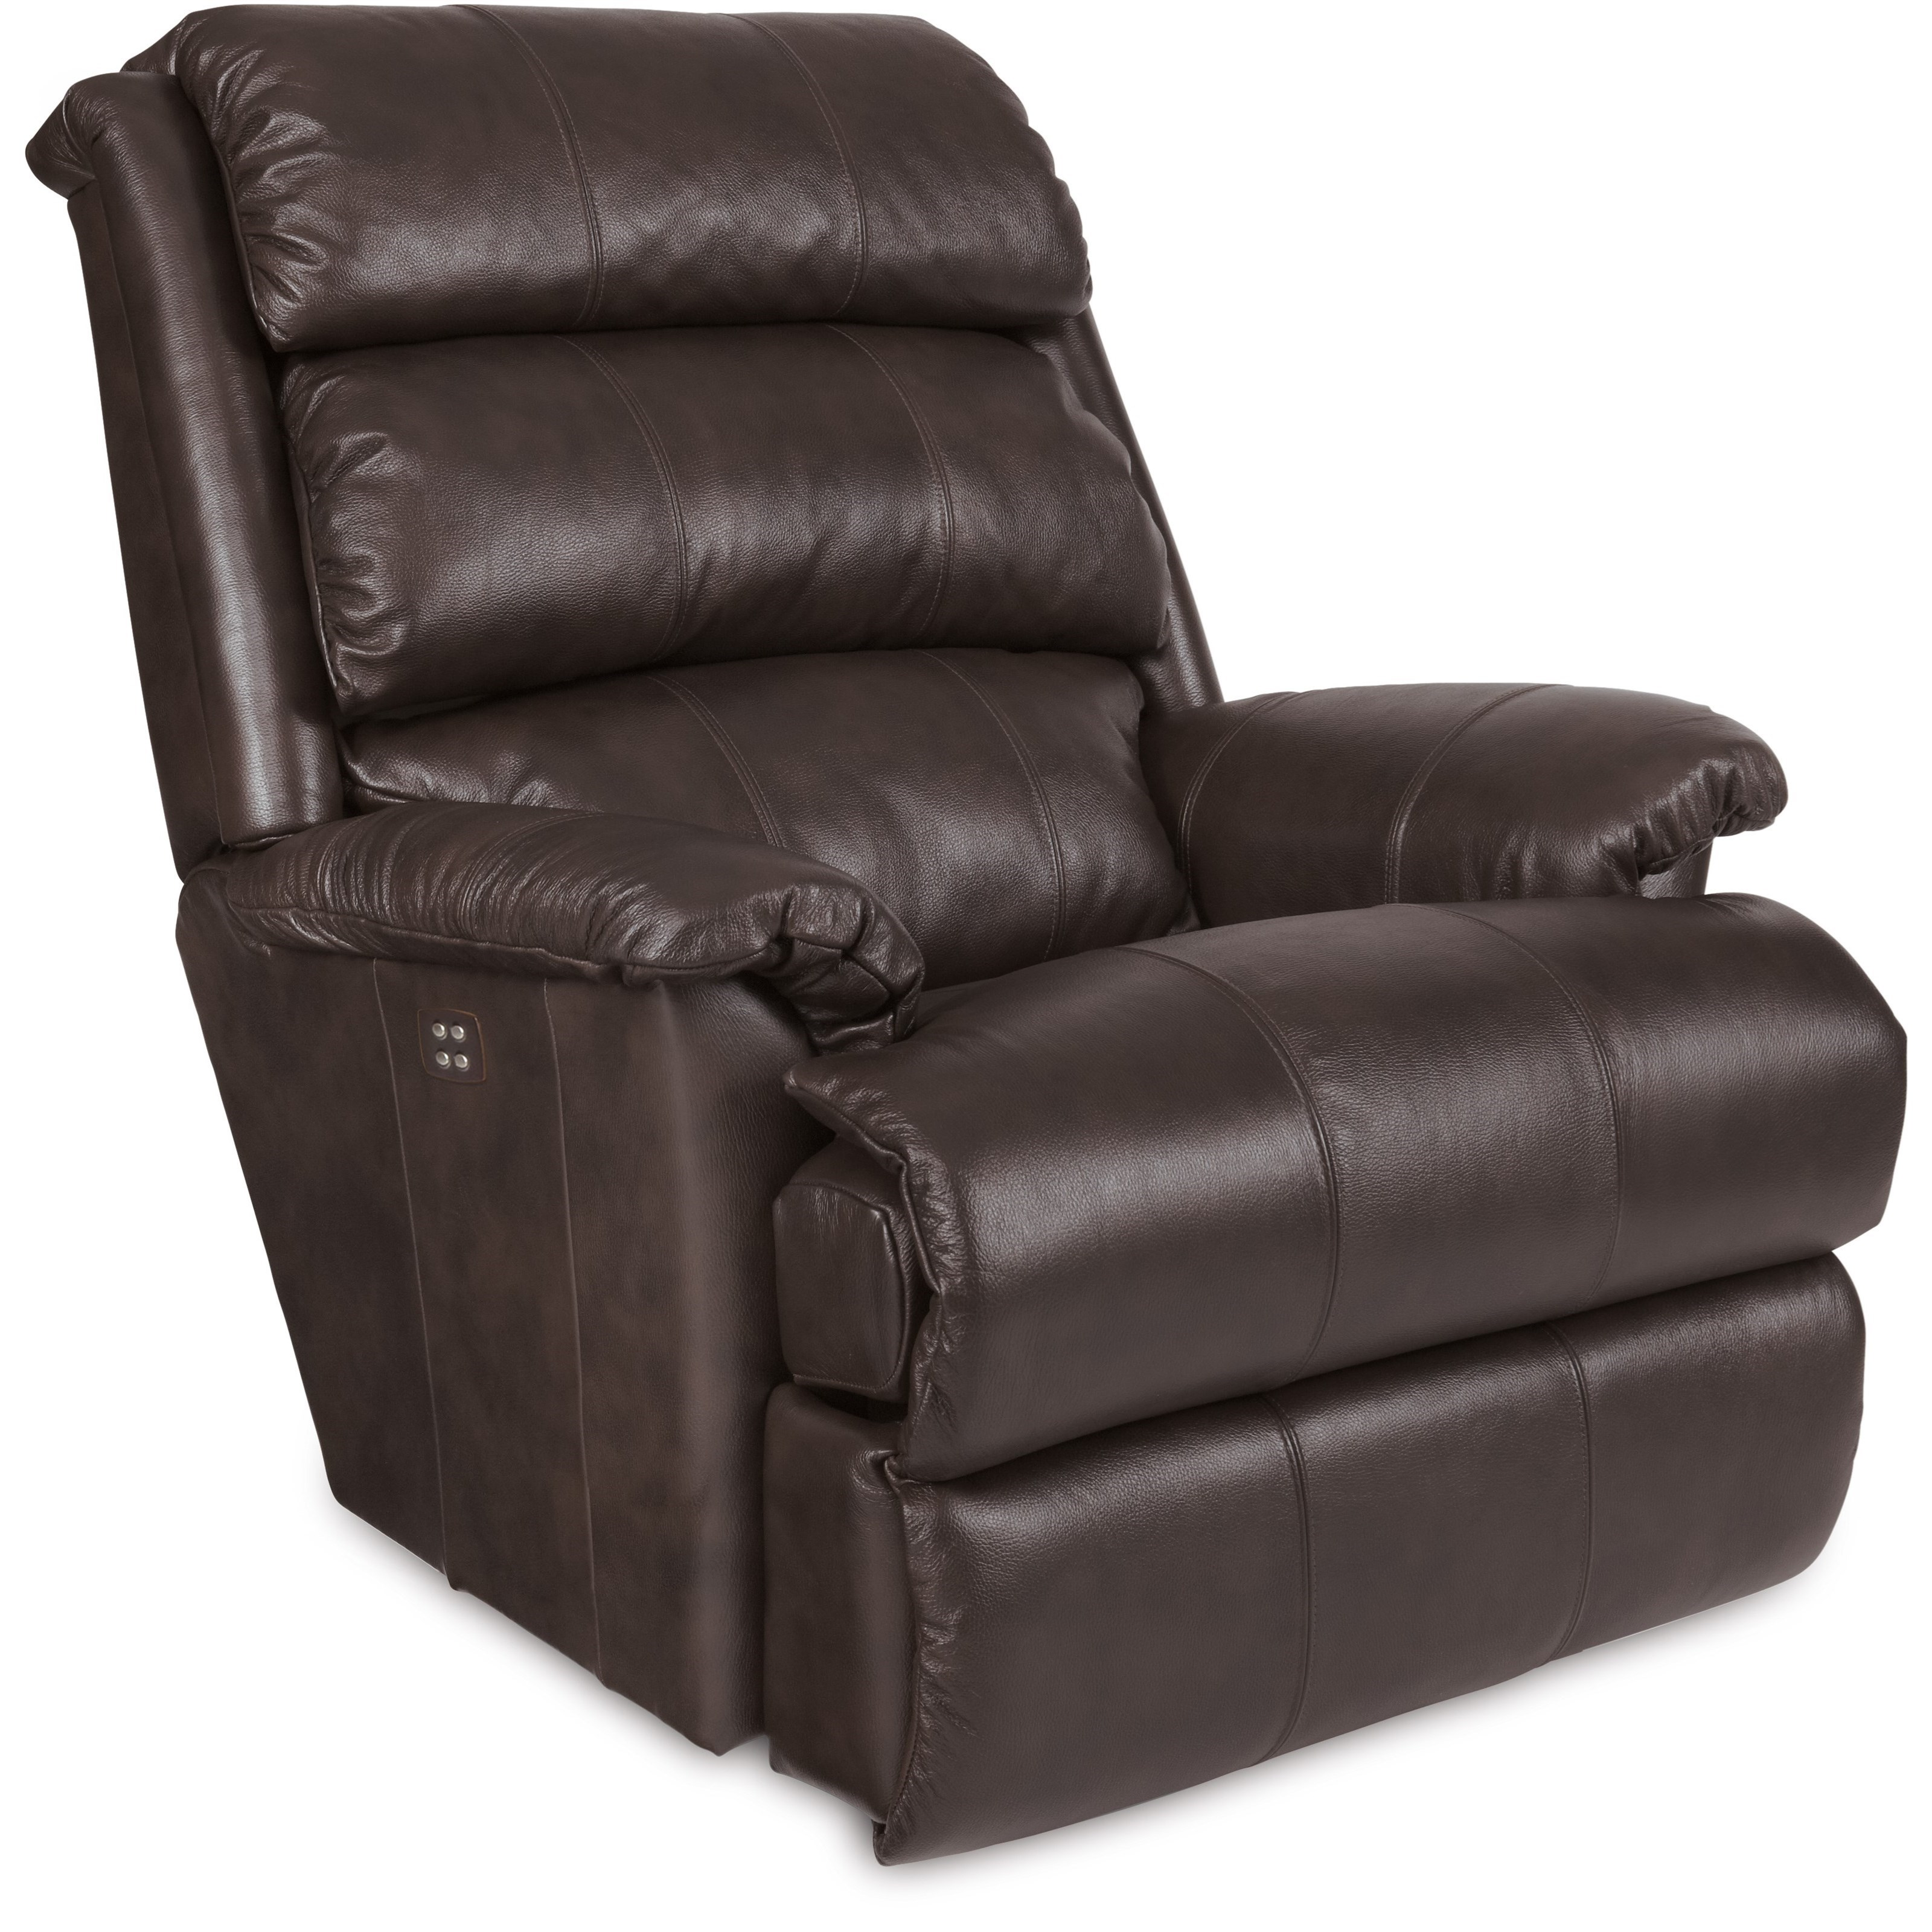 Power-Recline-XRw™RECLINA-WAY®Recliner with Channel-Tufted Back